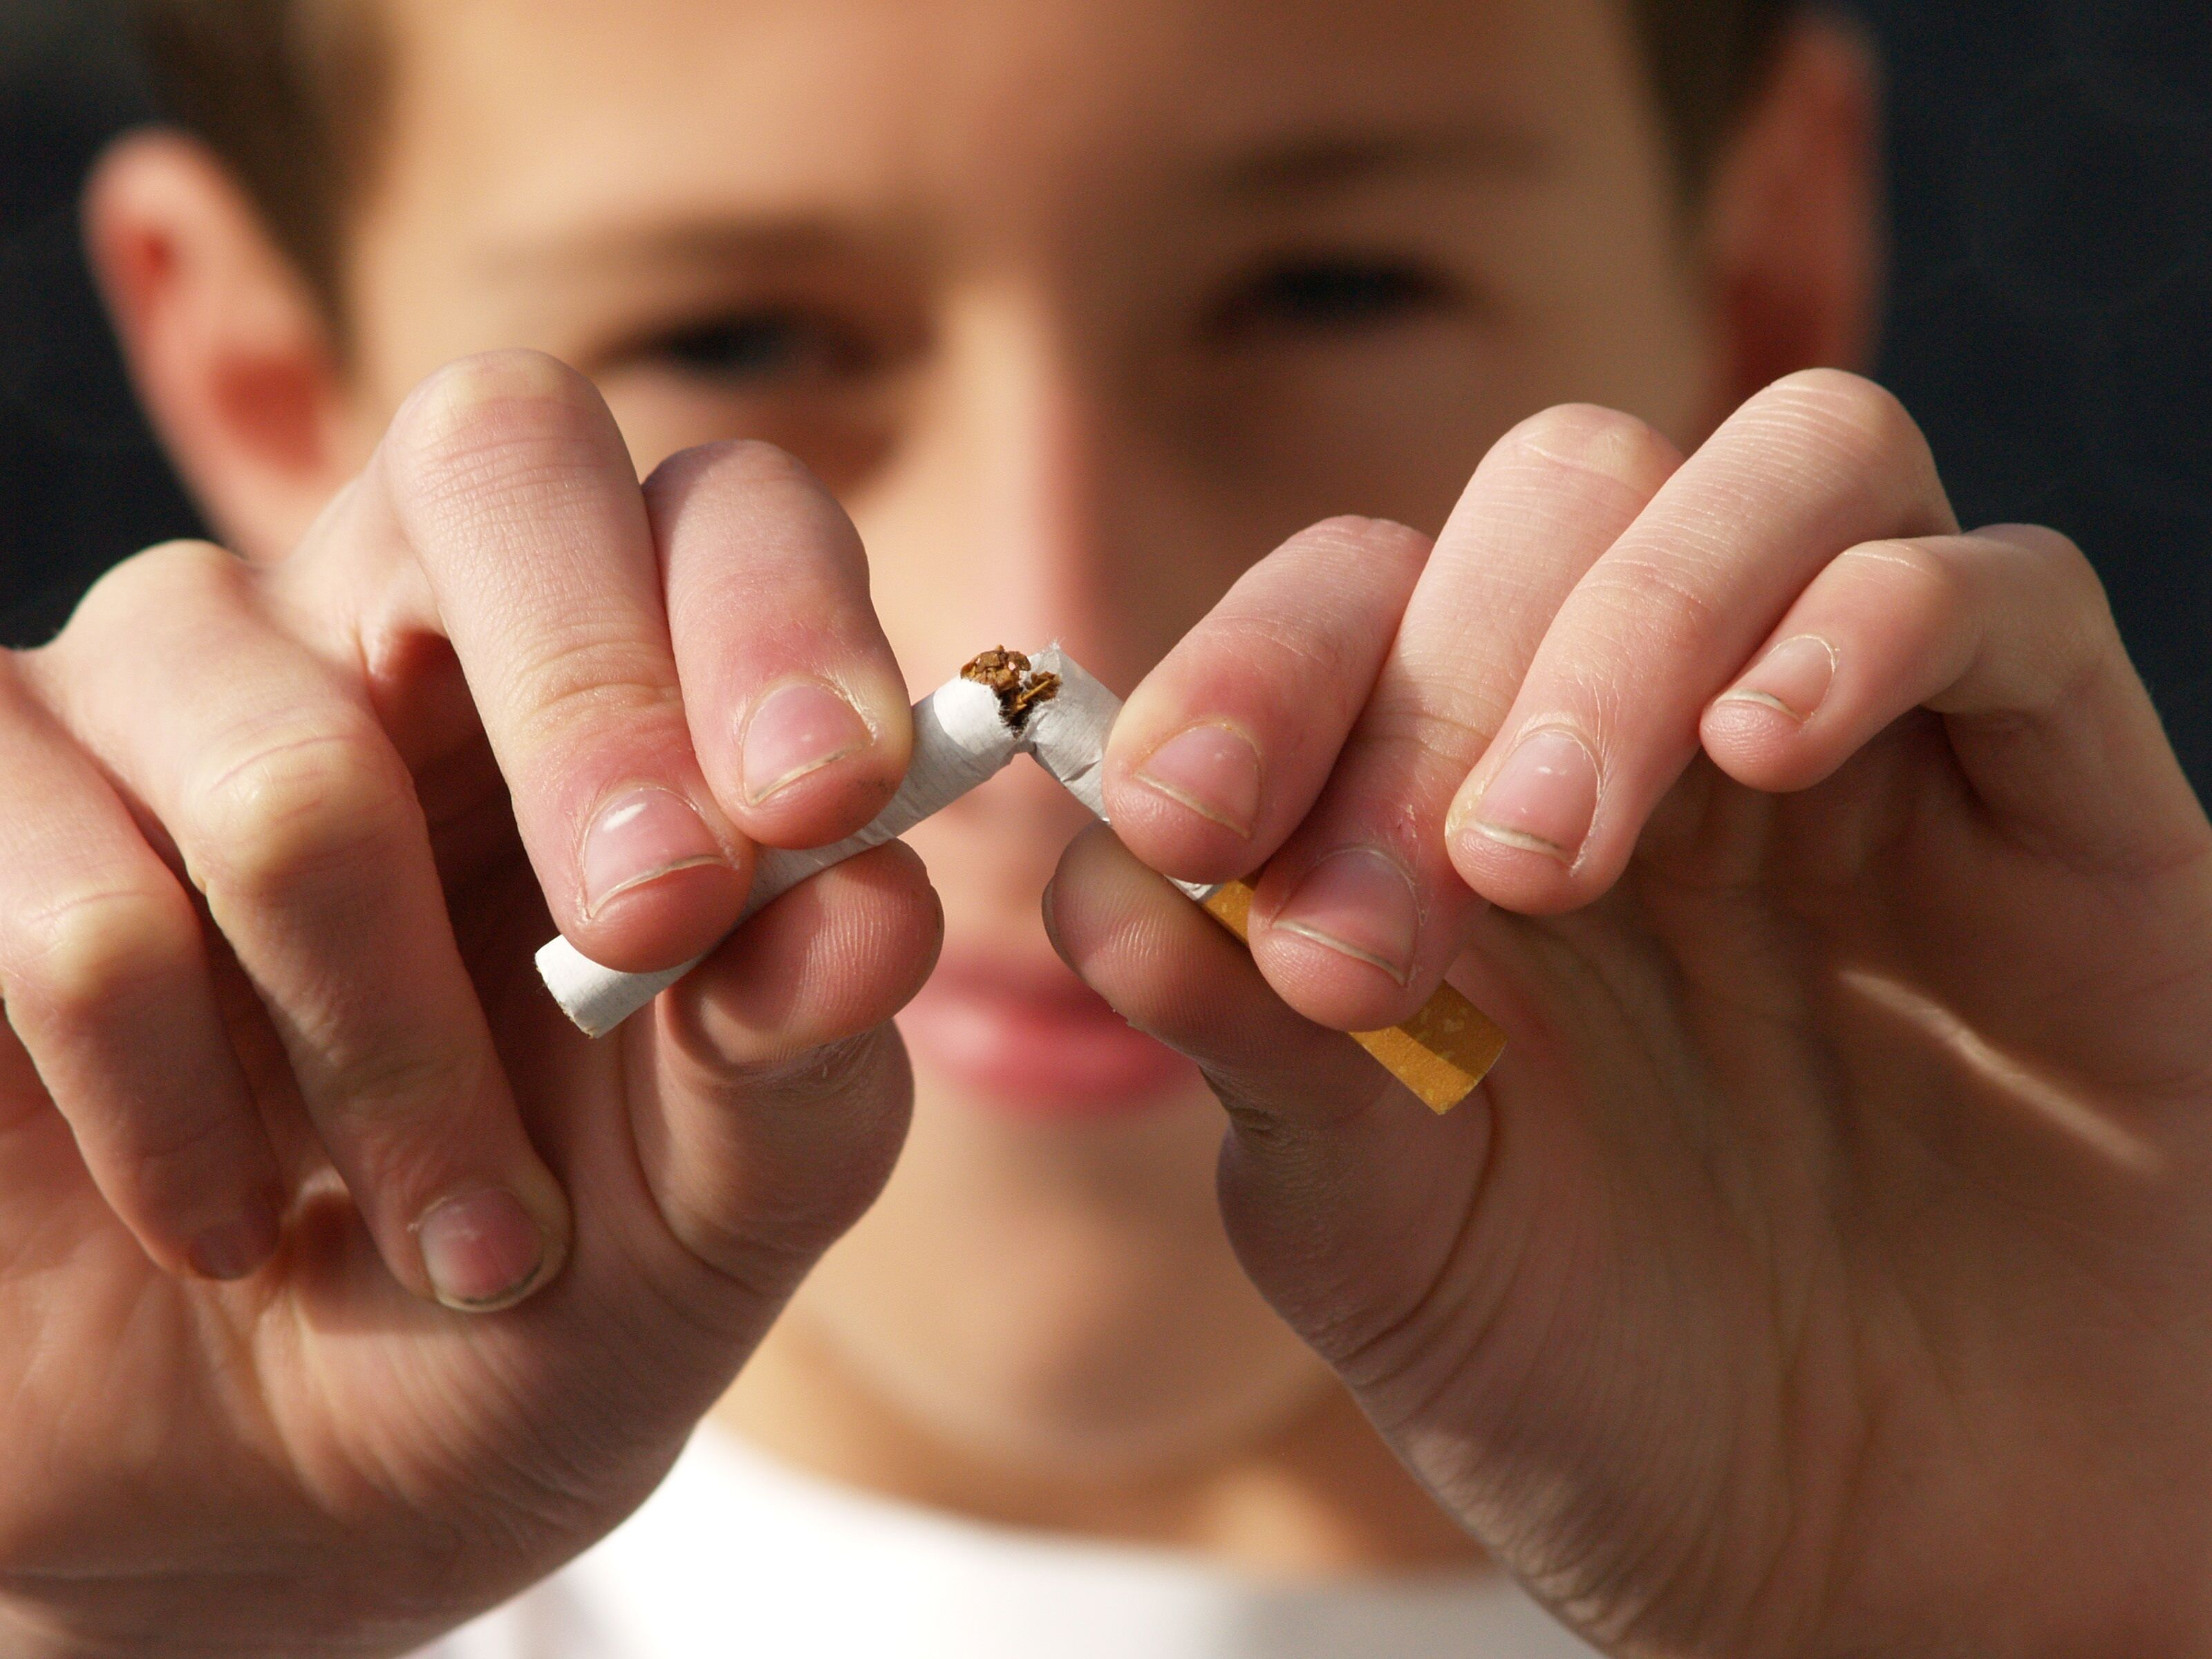 Plainfield NE Dentist | Tobacco & Your Teeth: The Risks of Chewing and Smoking